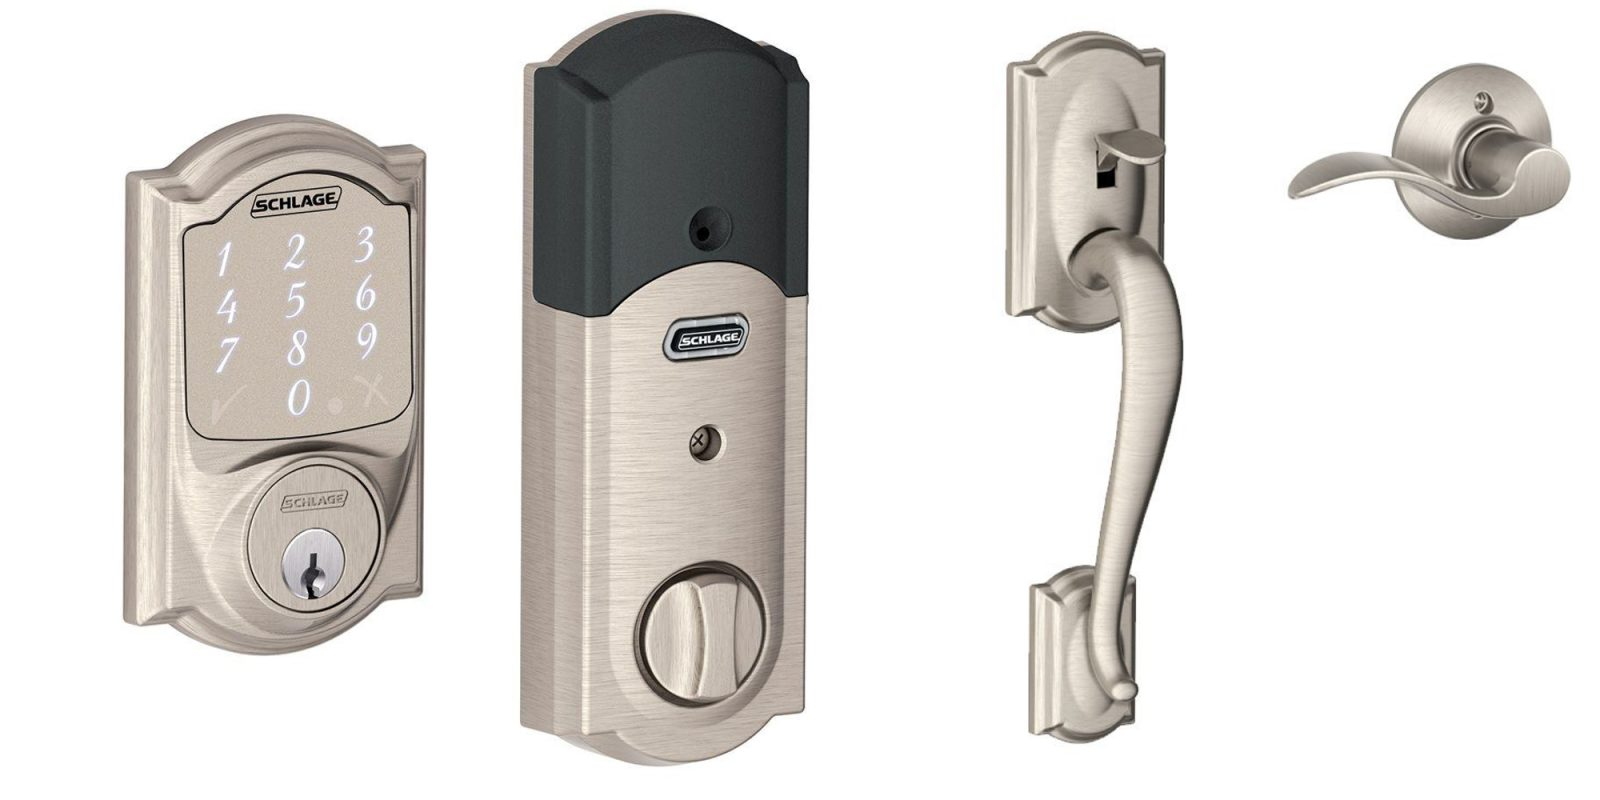 Save up to 35% on smart locks at Home Depot: Schlage Camelot